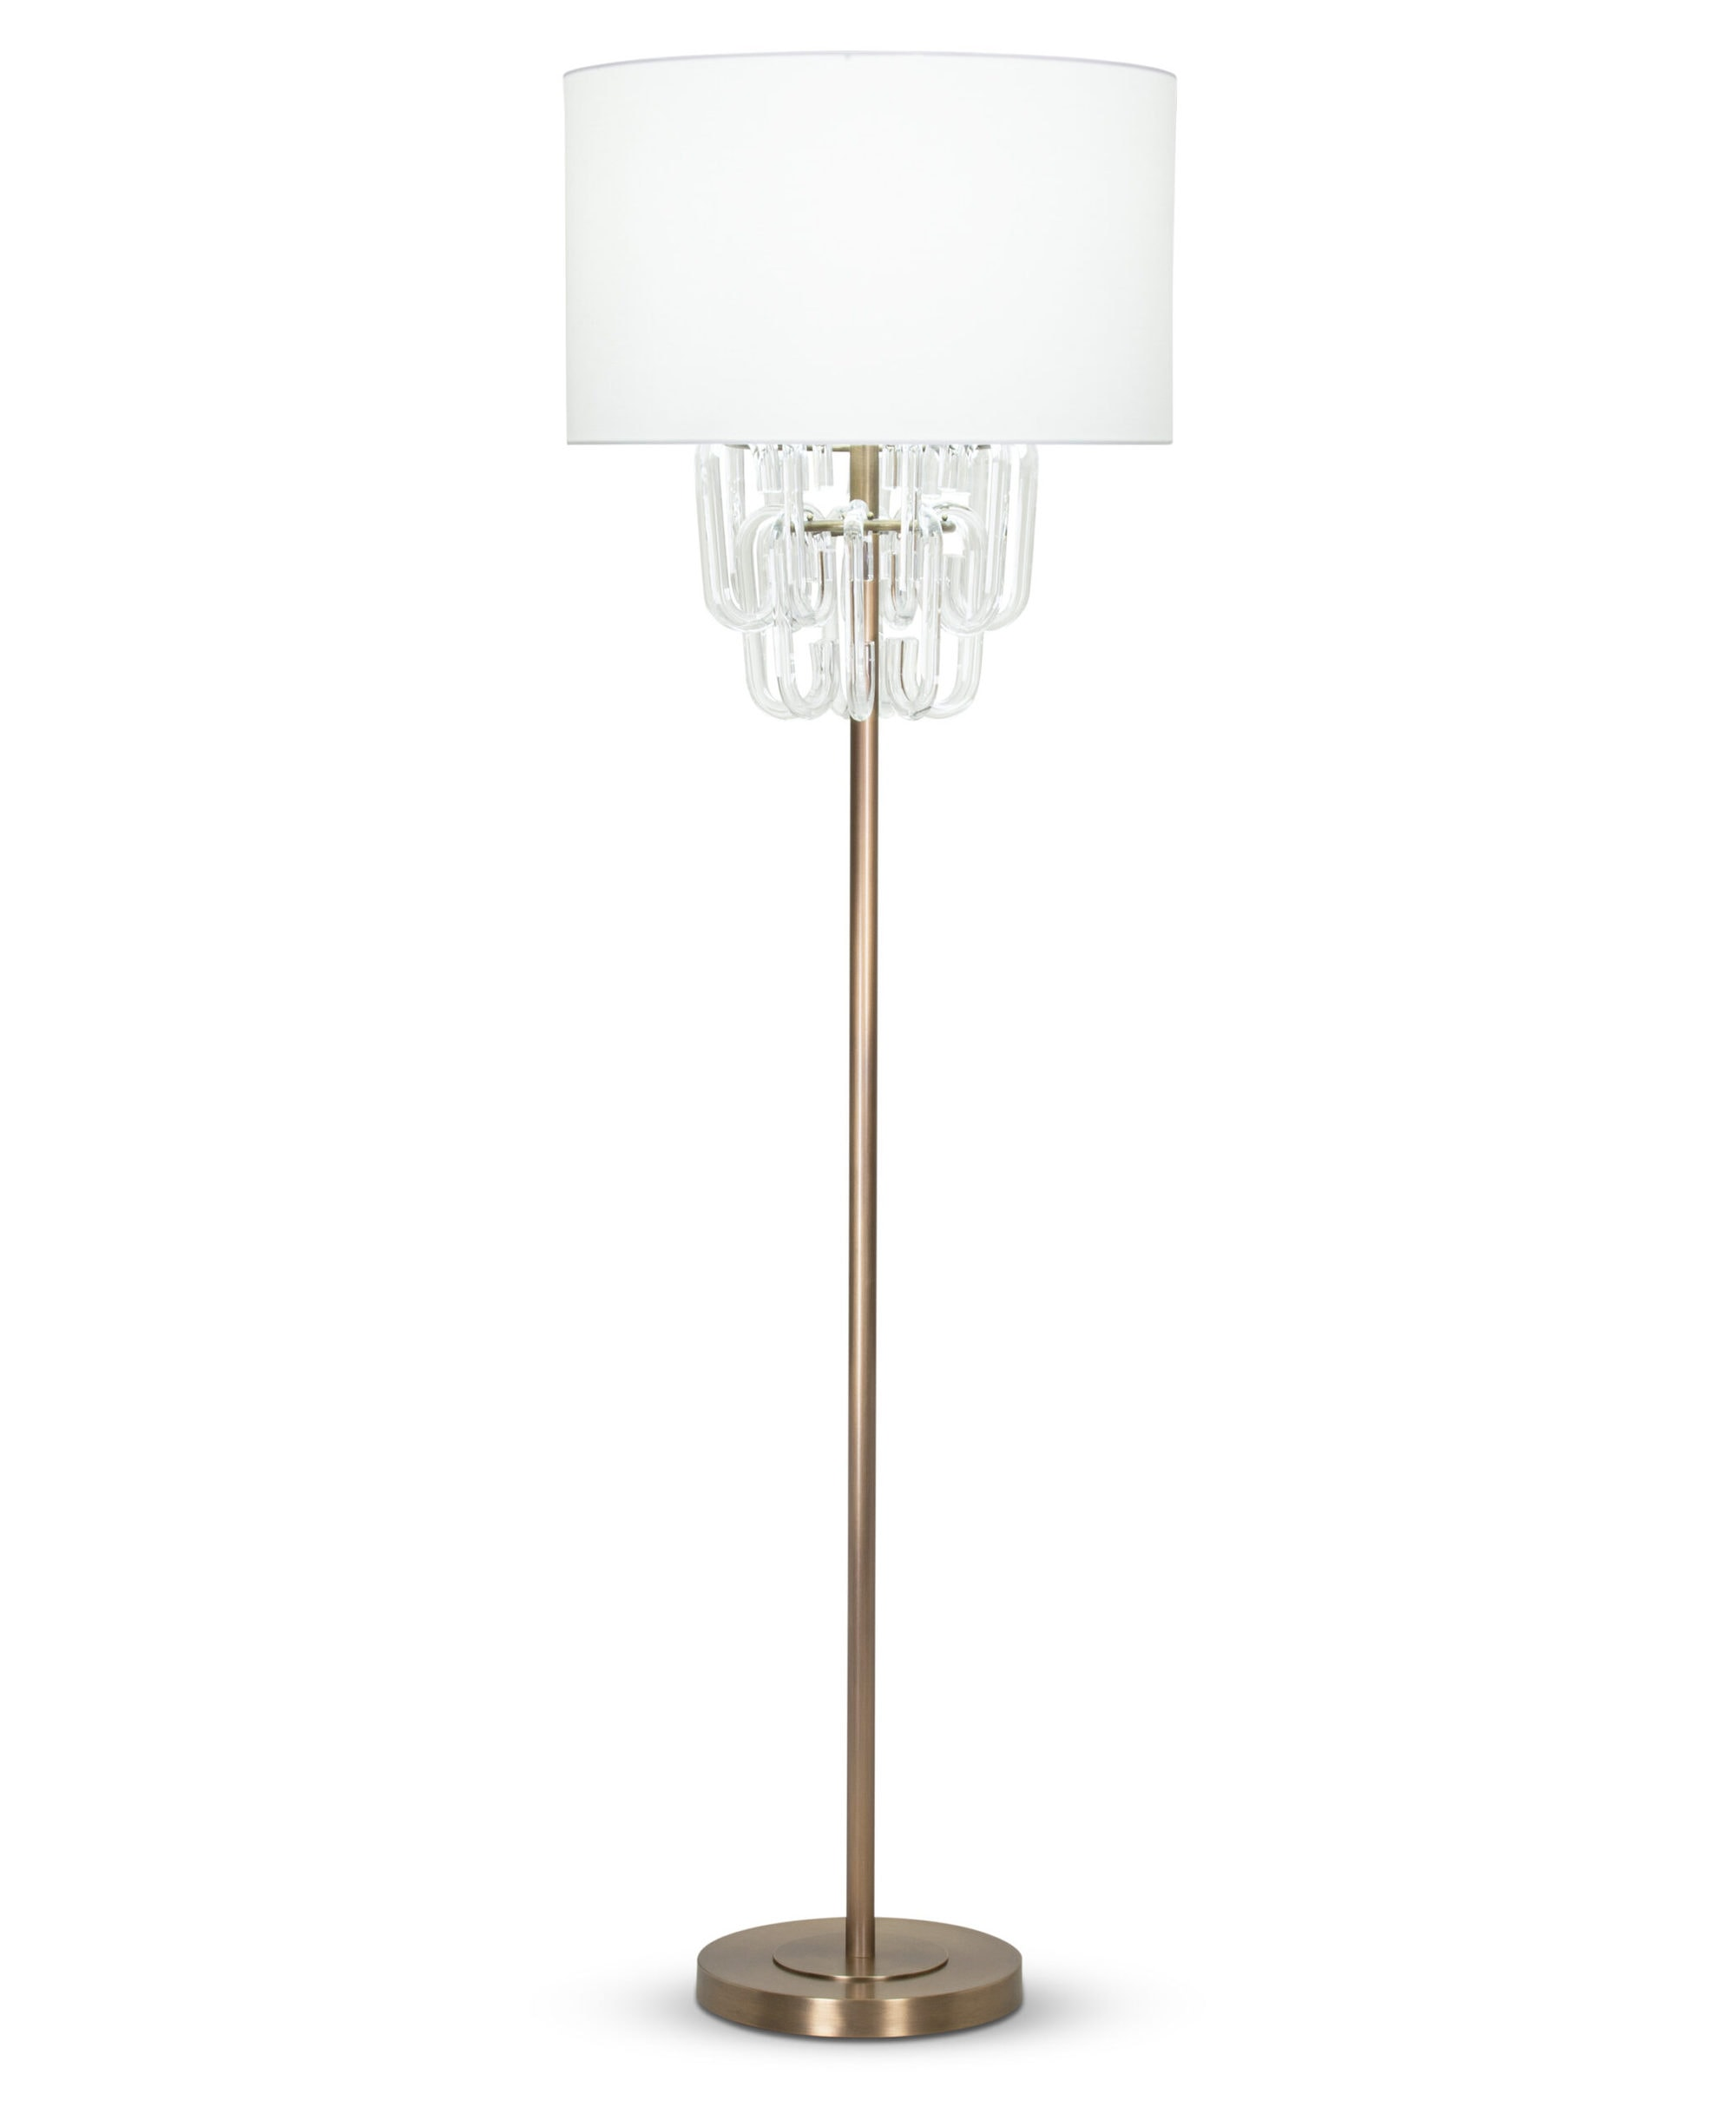 FlowDecor Grenada Floor Lamp in metal with antique brass finish and glass and off-white cotton drum shade (# 4411)